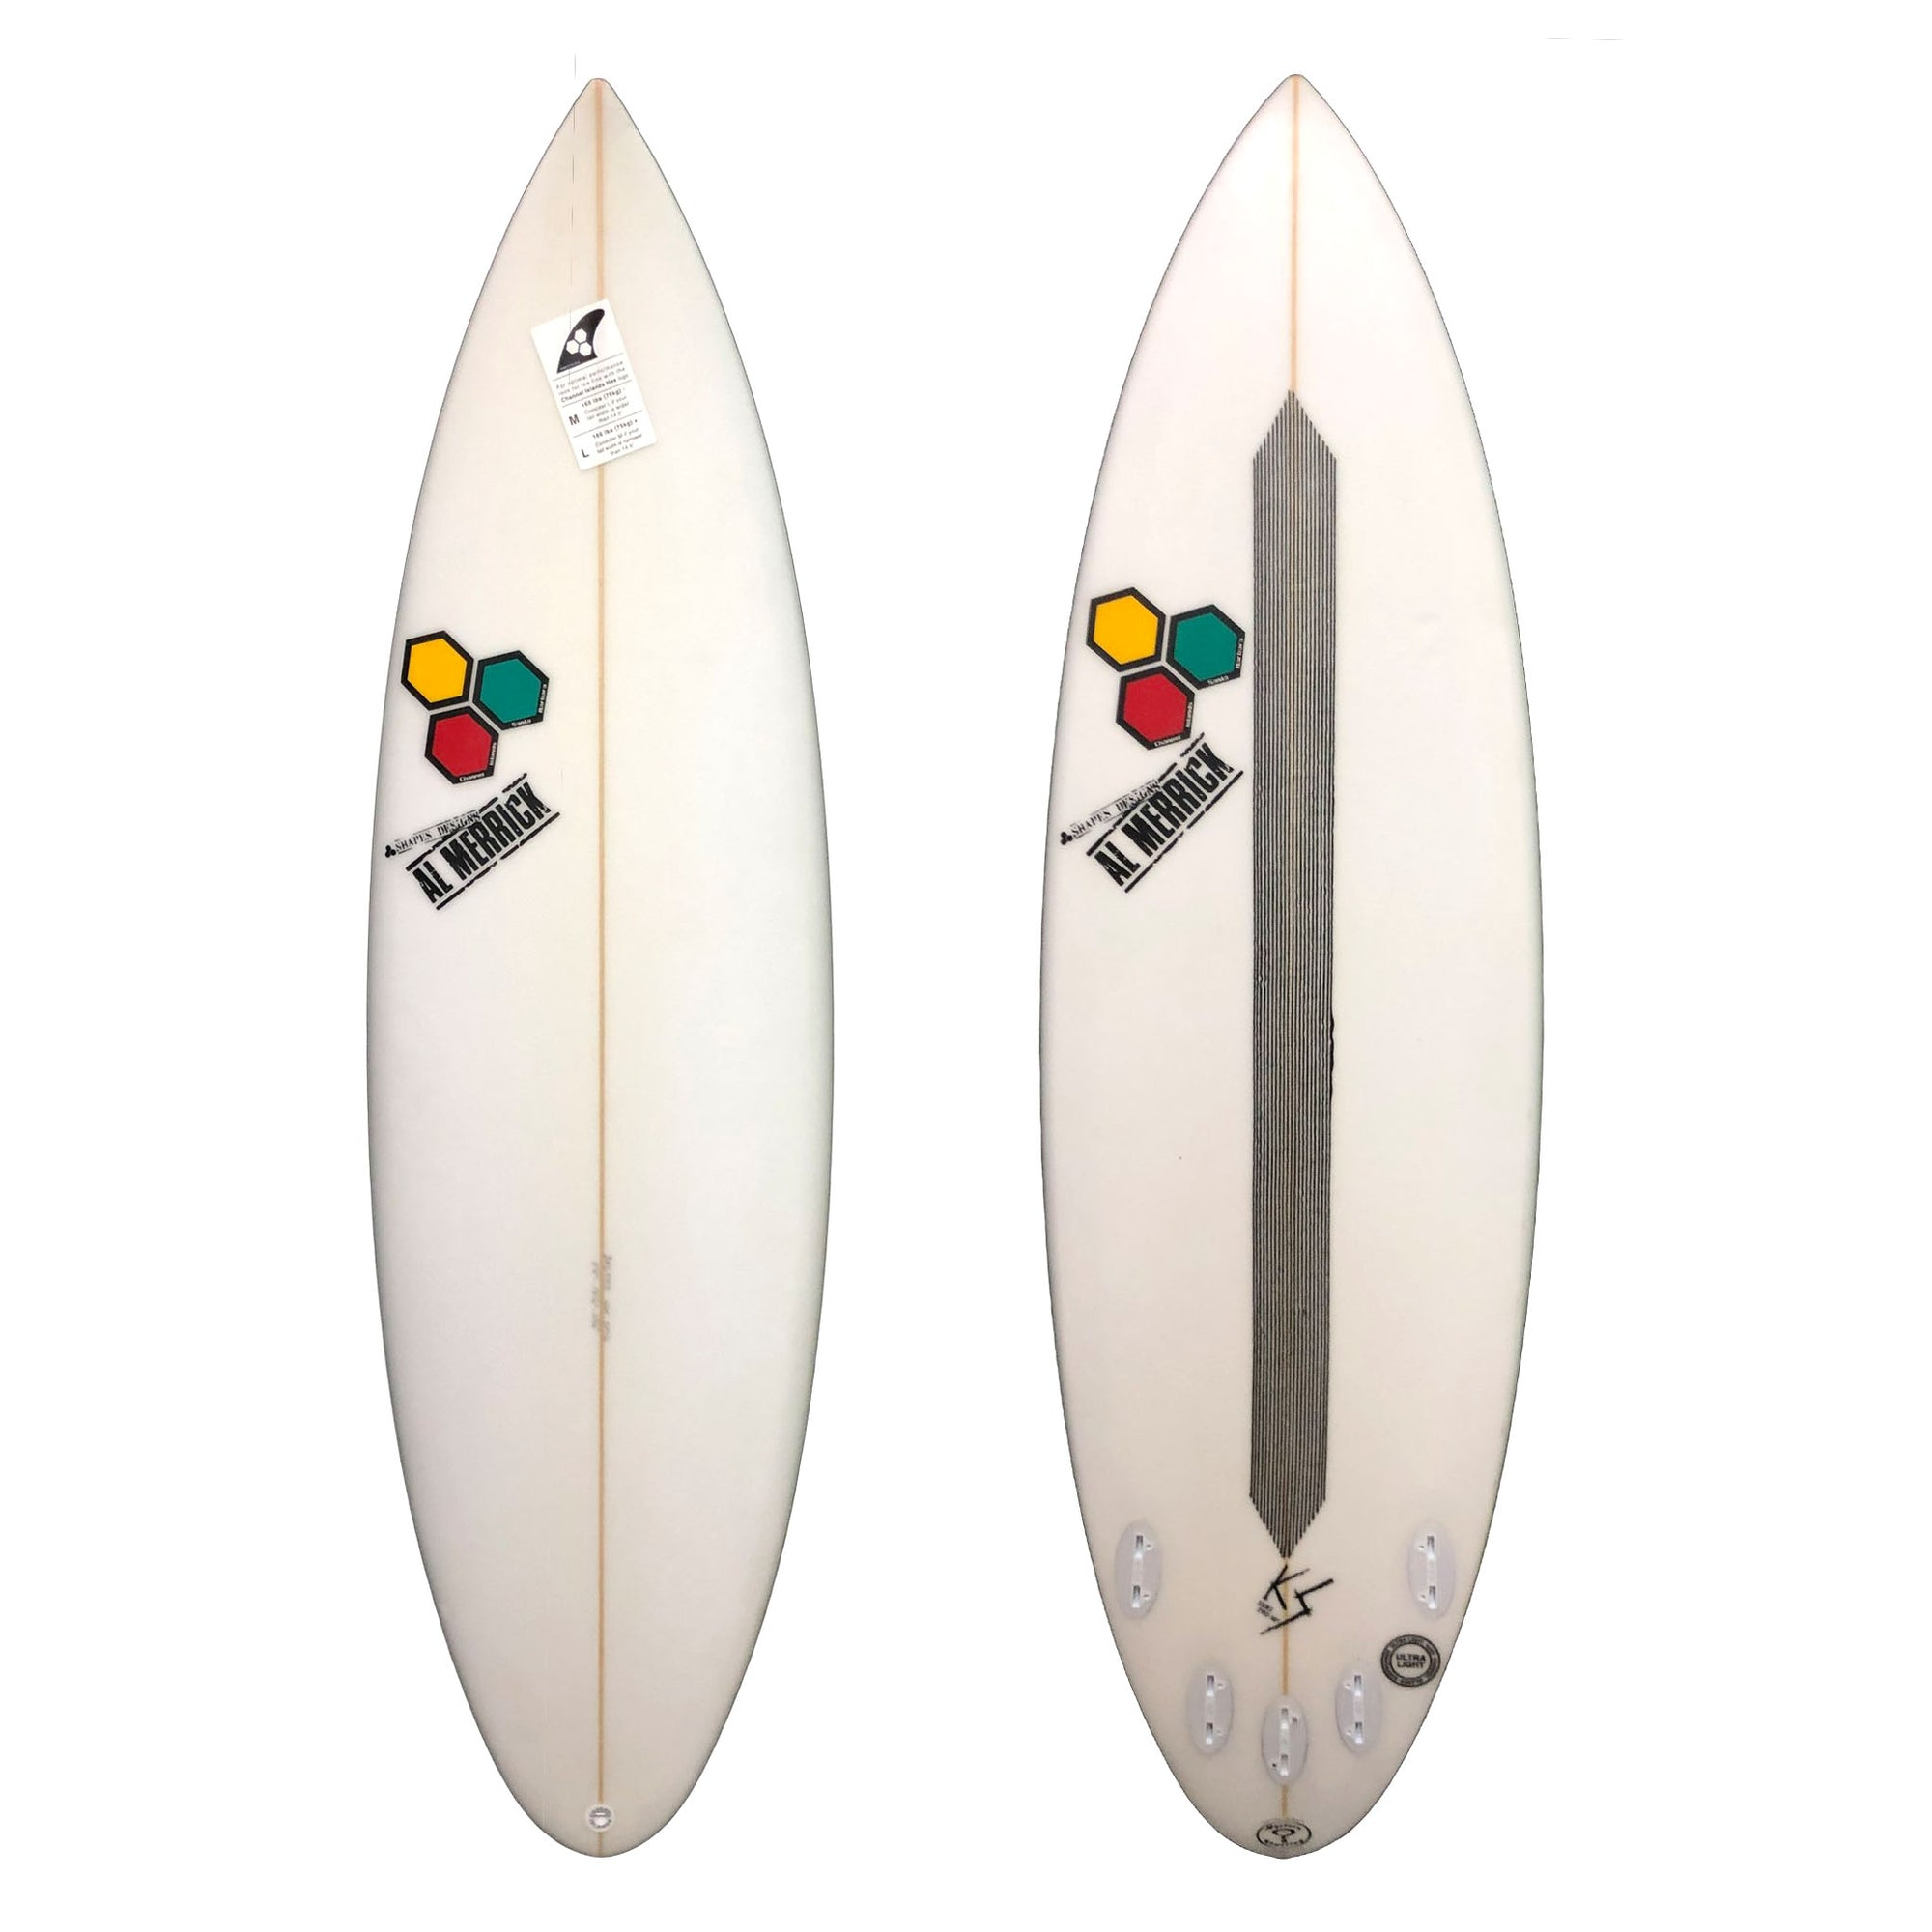 Channel Islands Semi-Pro 12 Surfboard